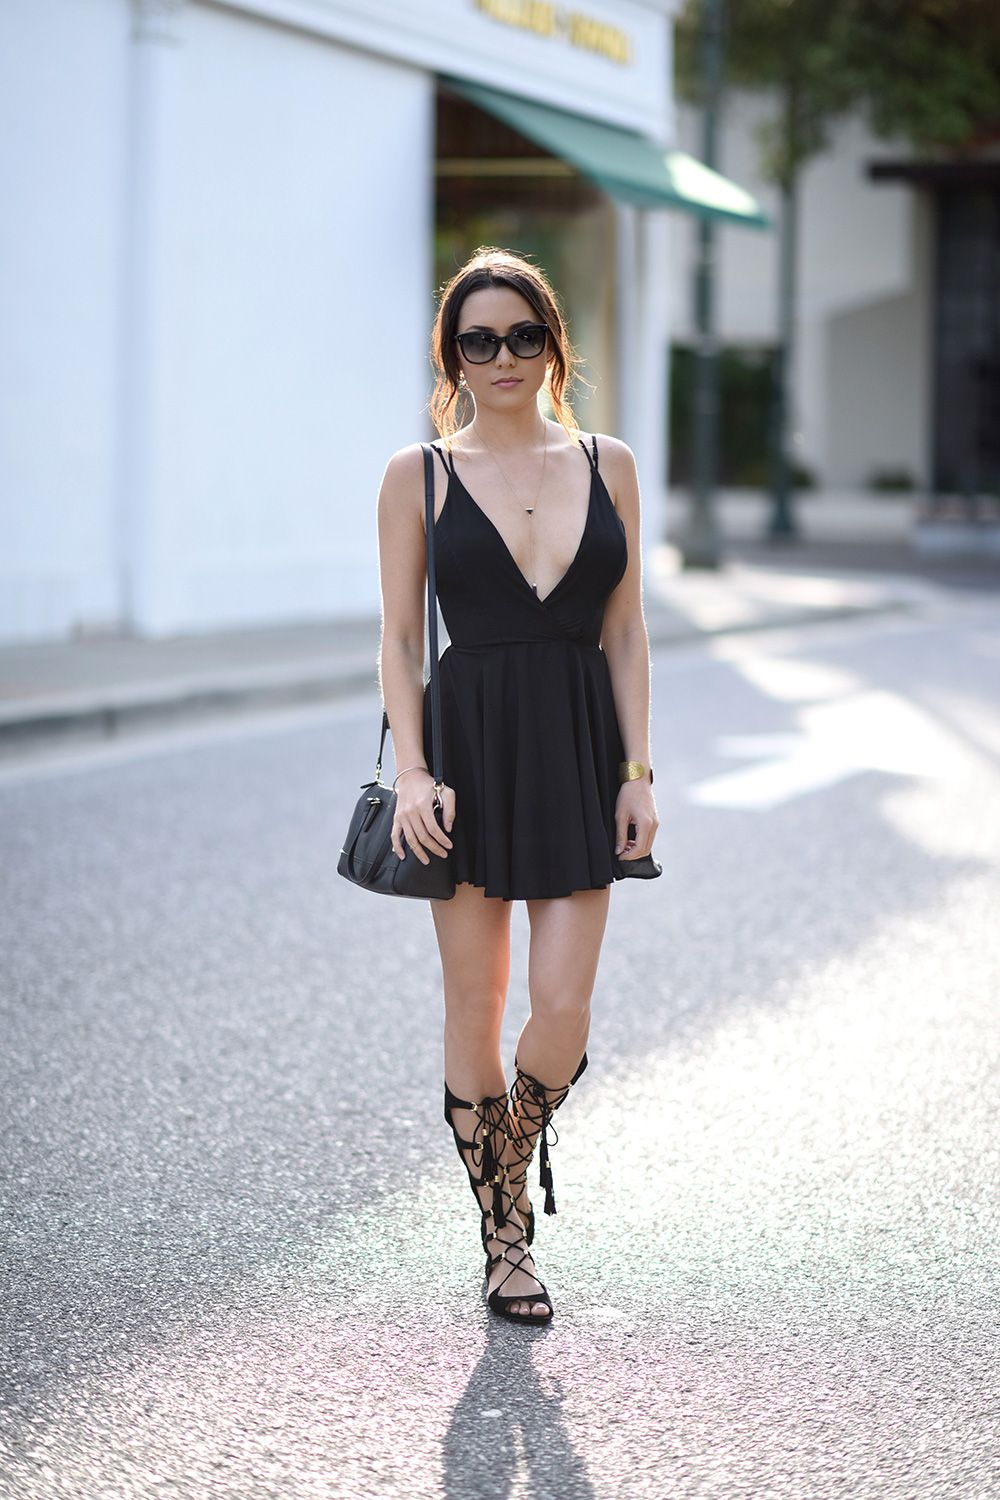 f0443fdb64ba Don't be afraid to wear a pair of calf high gladiator sandals! Jessica R.  shows us just how effective strappy sandals can be, pairing these with a  classic ...